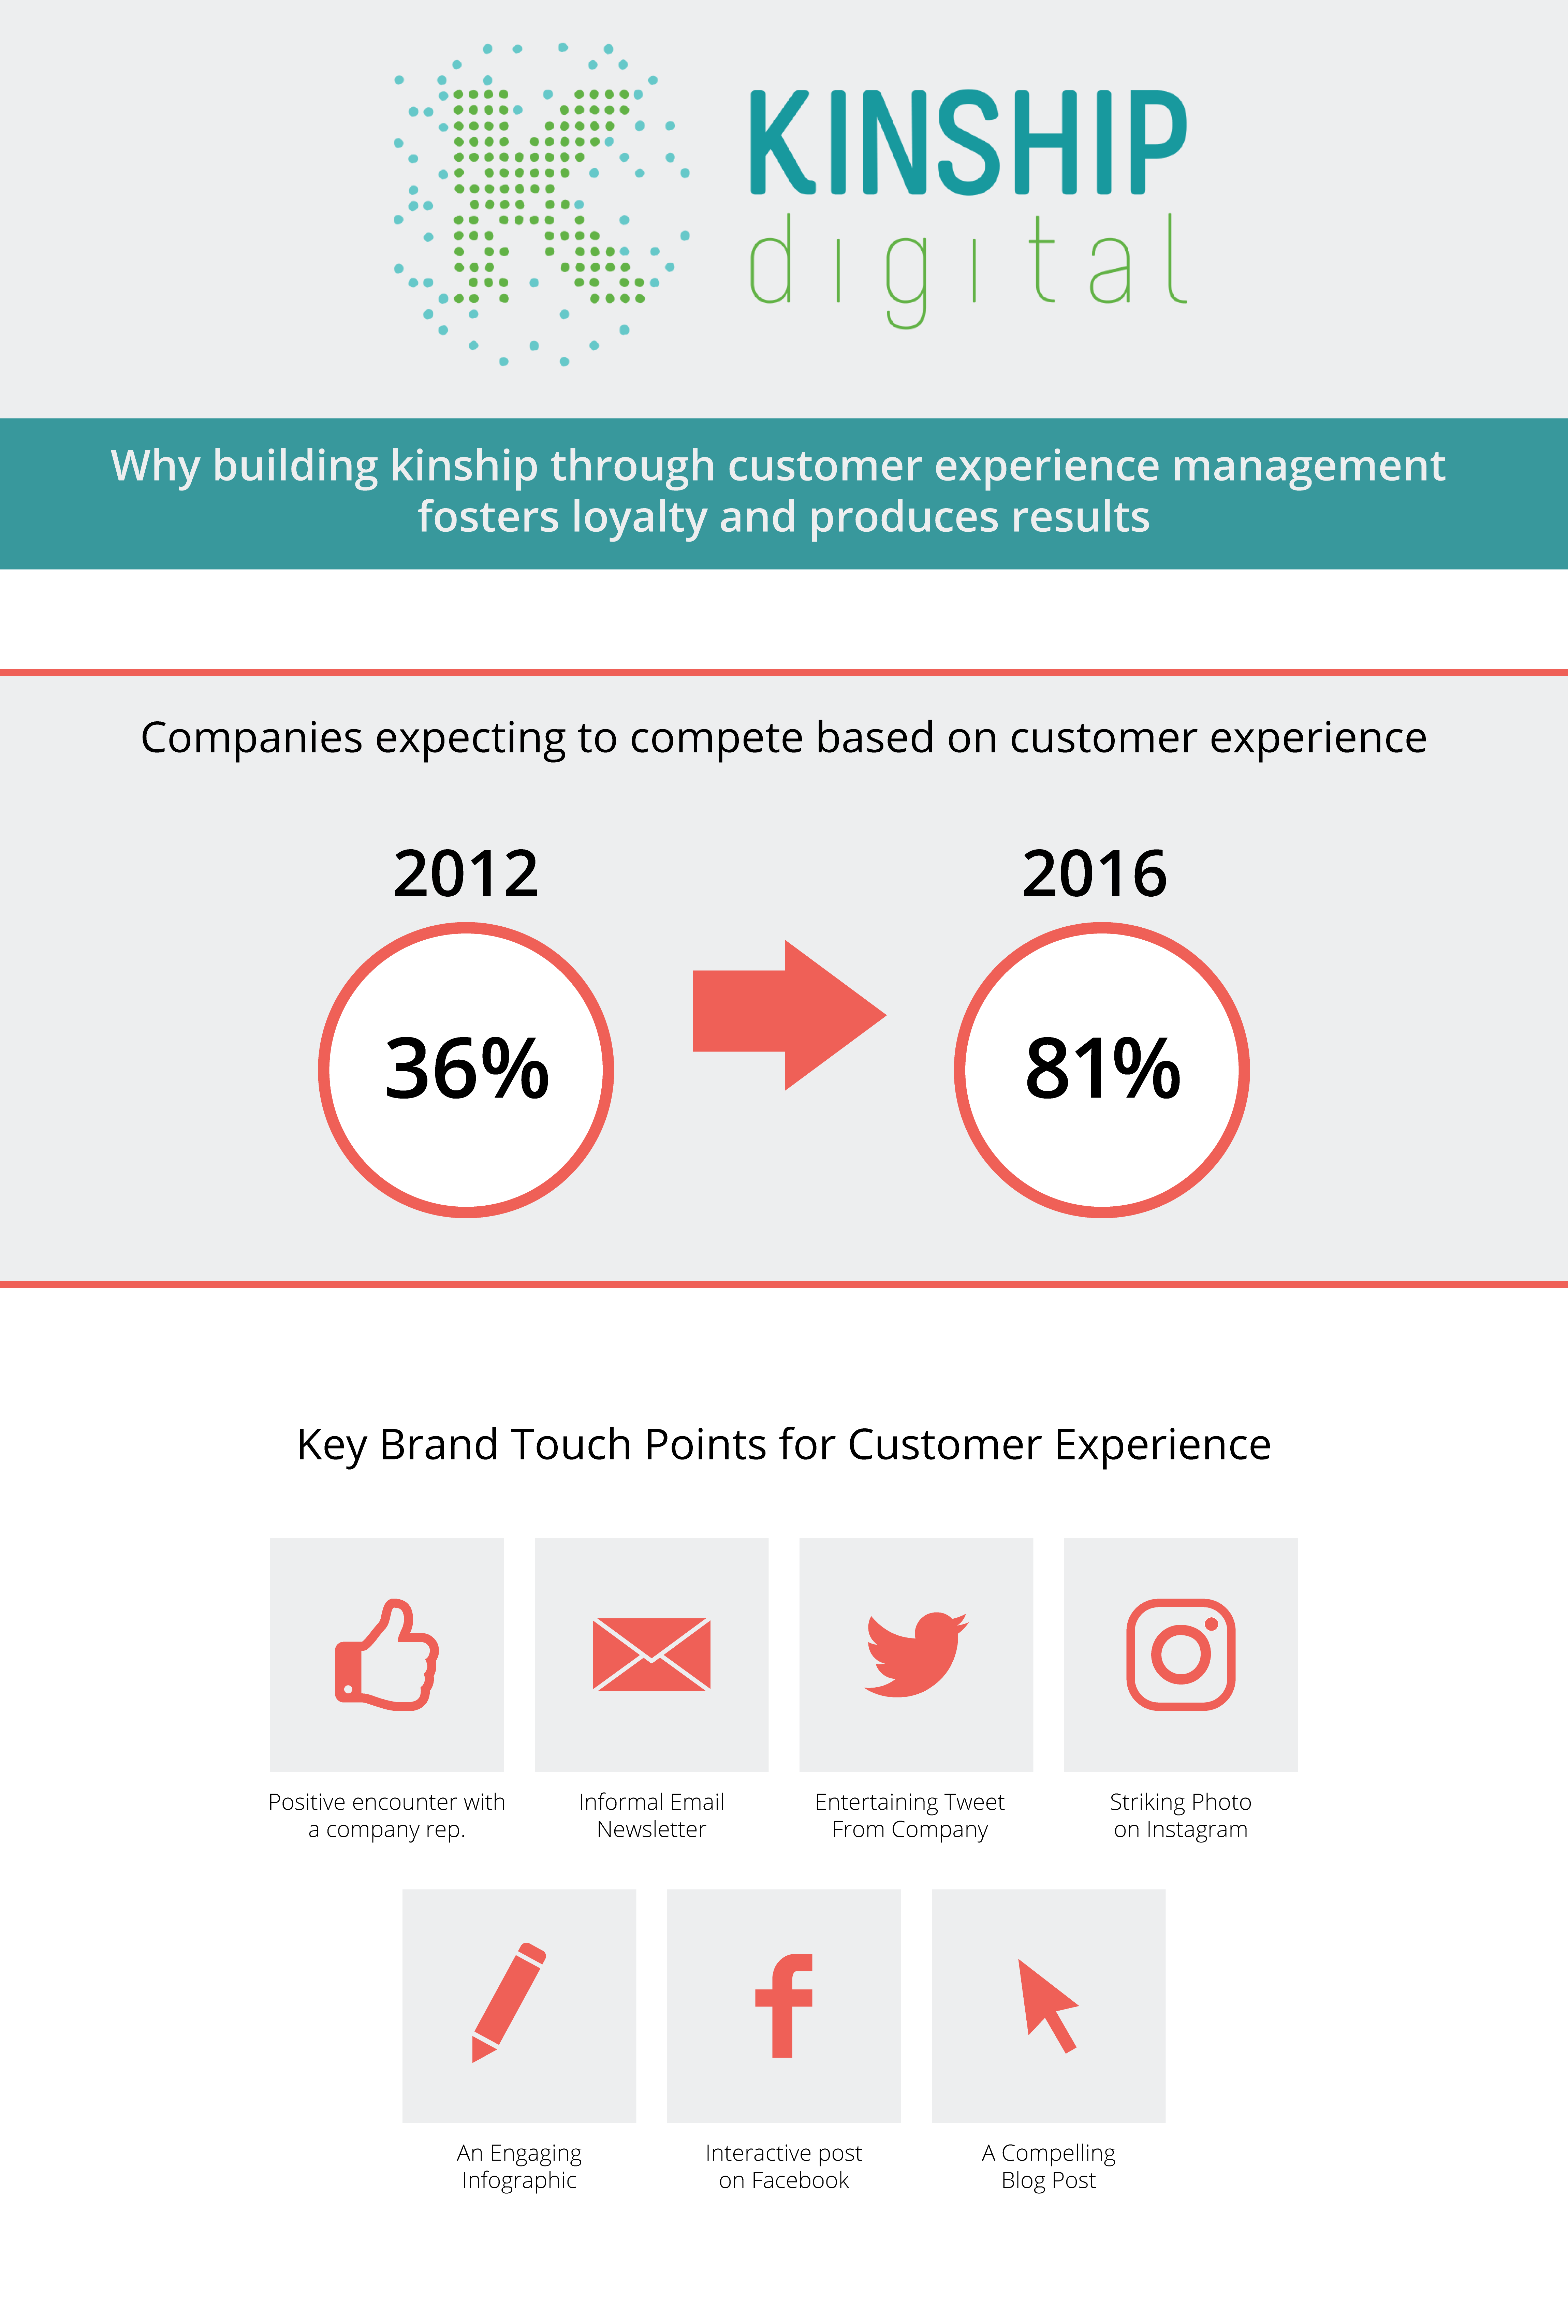 Why building KINSHIP through customer experience management fosters loyalty and produces results